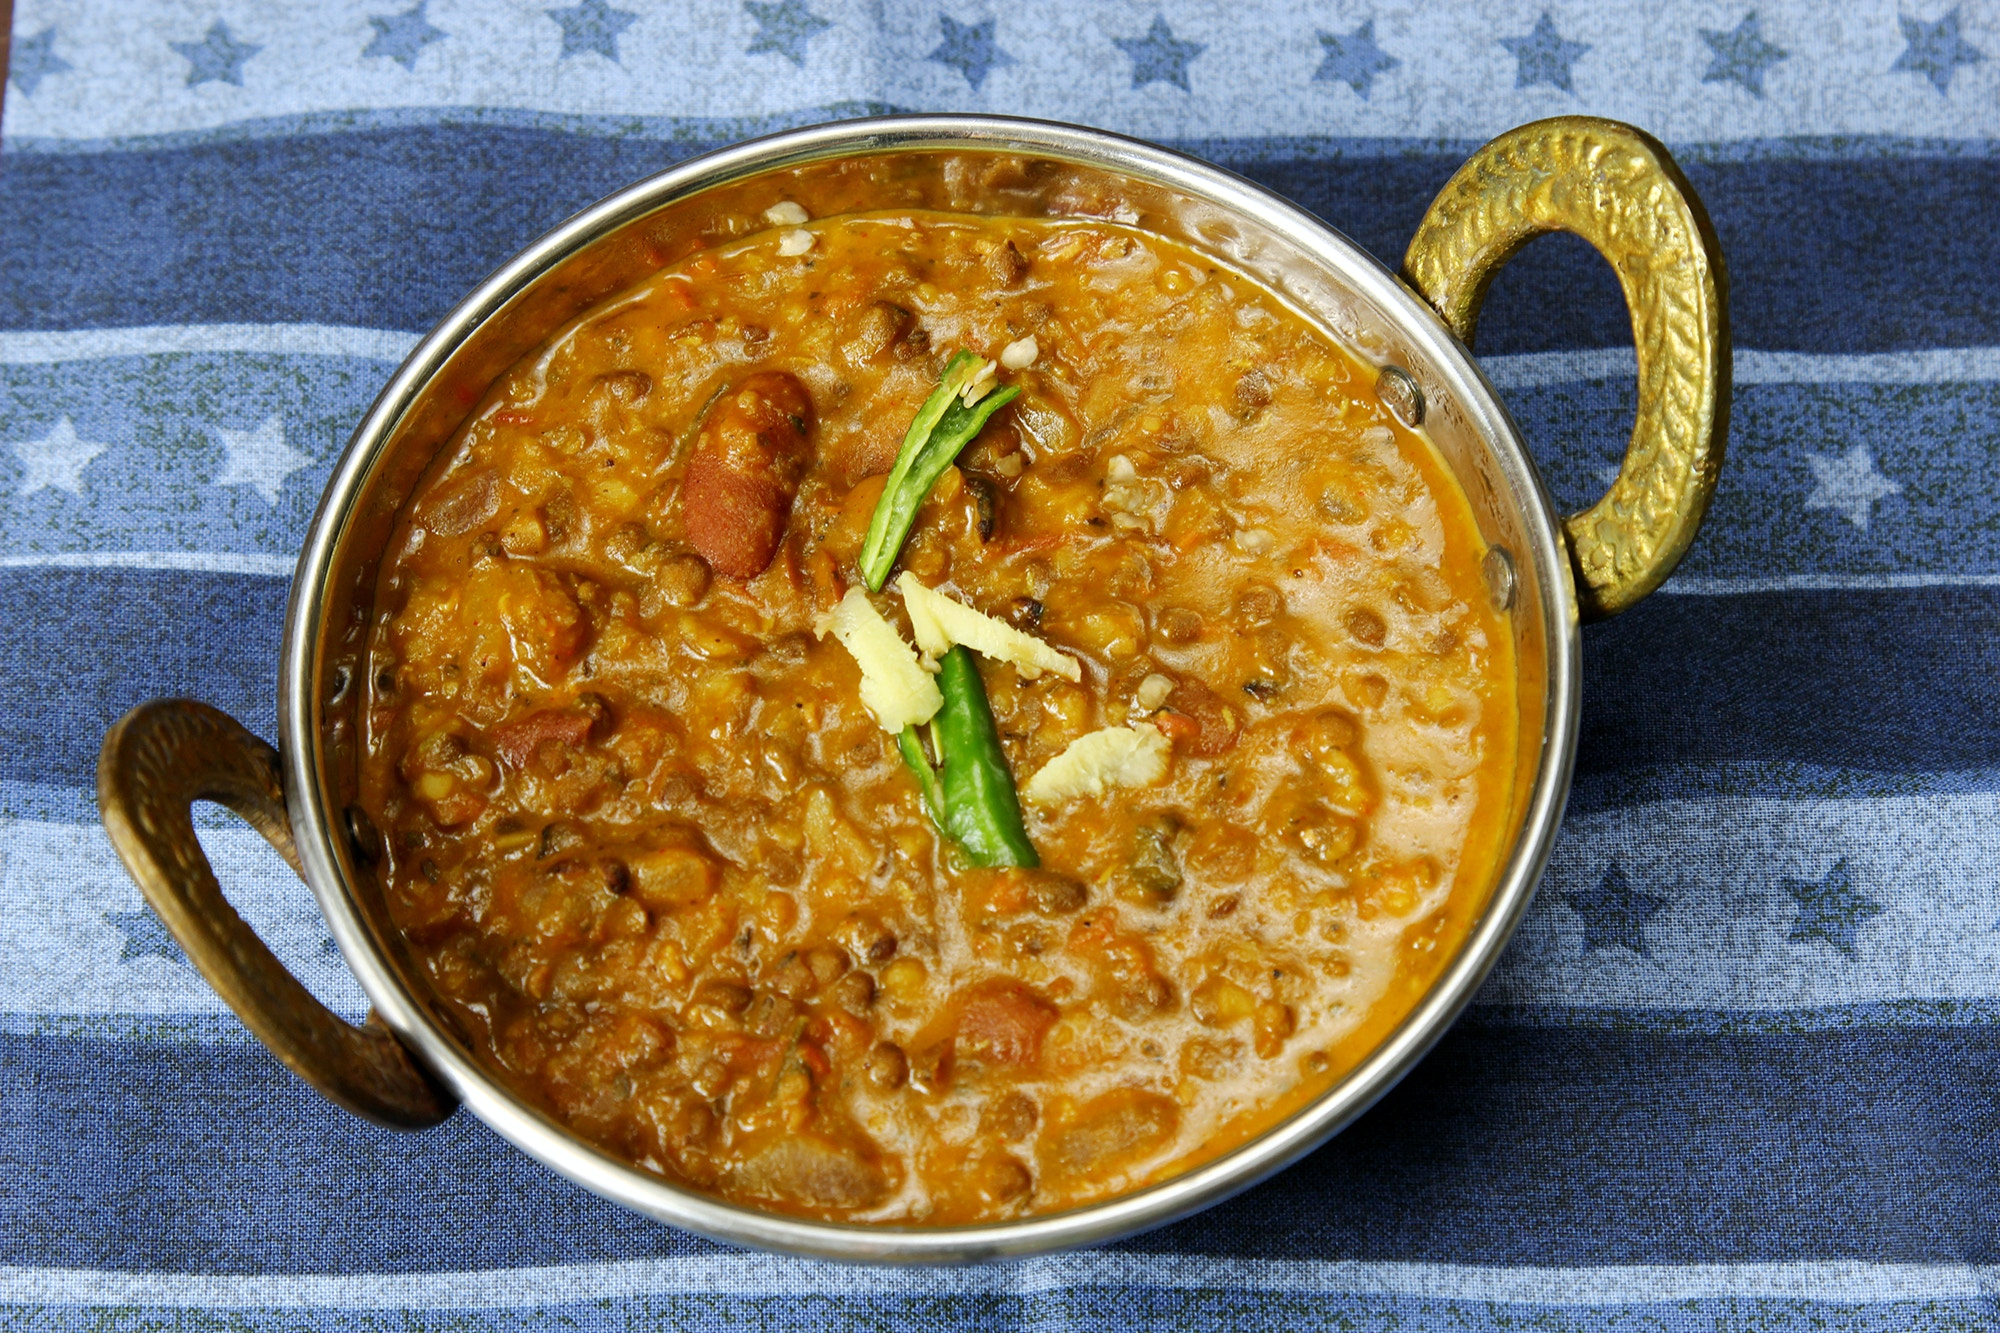 Daal Makhani in a kadhai serving dish on a blue background © DipaliS / Getty Images